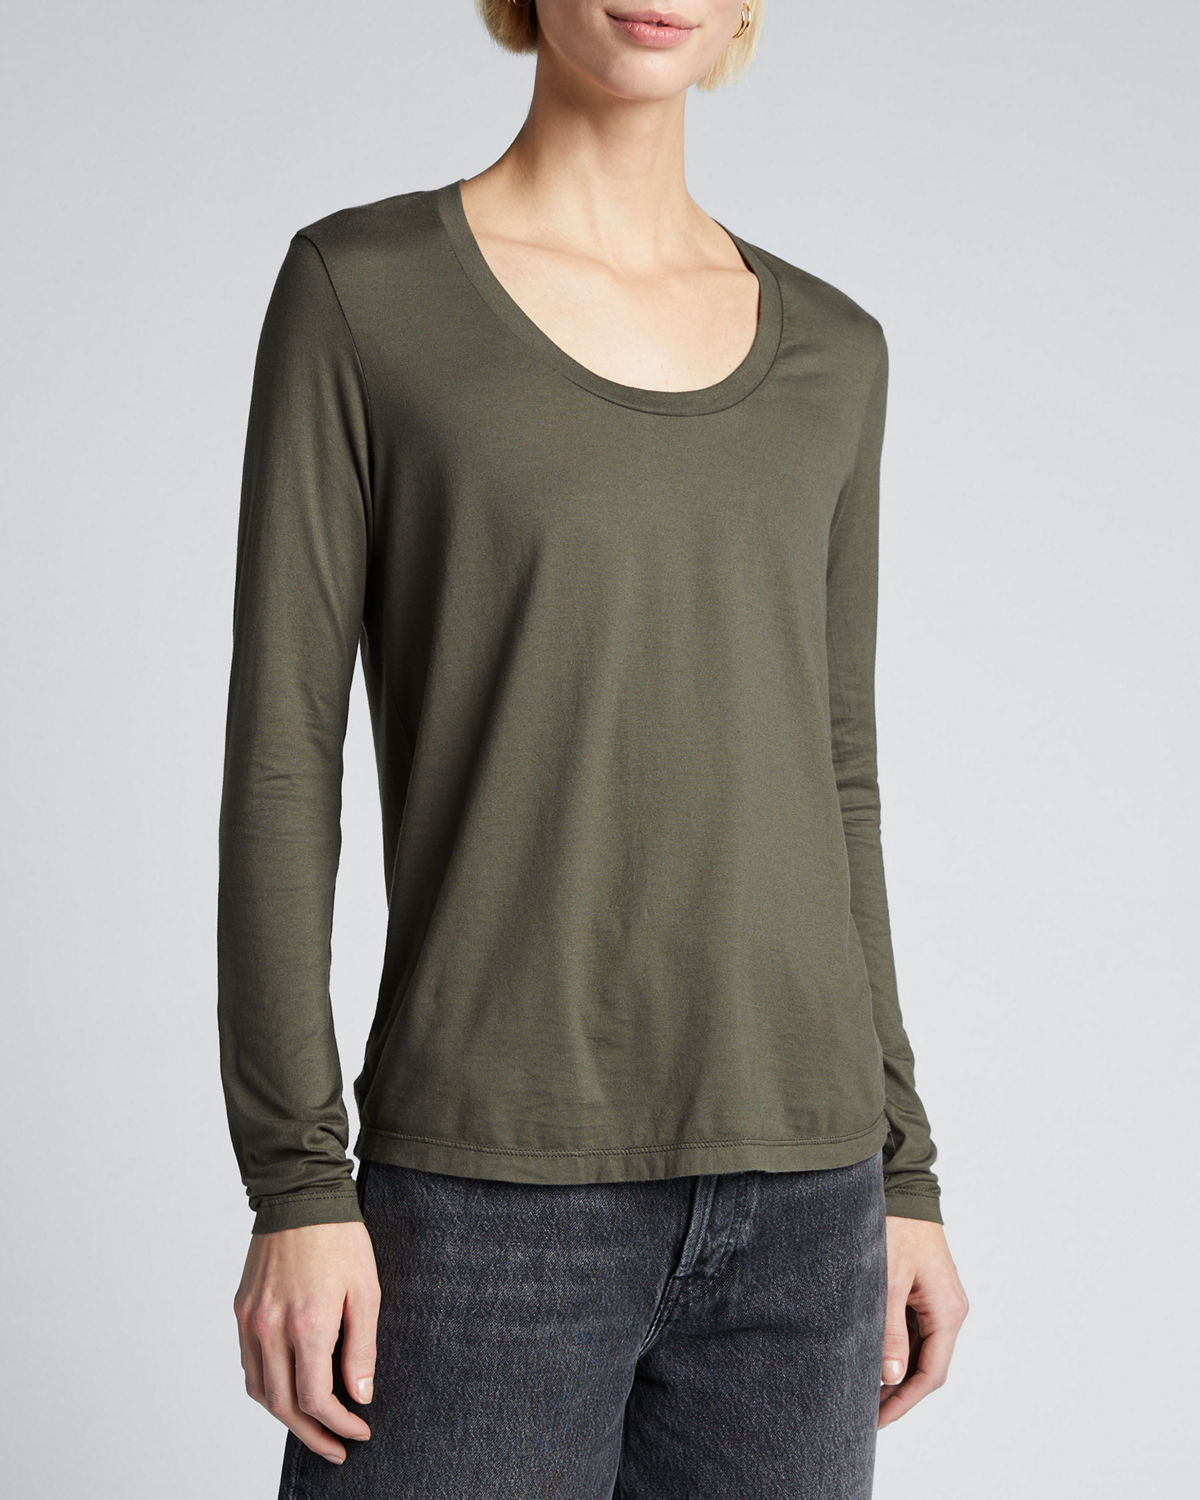 Ag Tops CAMBRIA SCOOP-NECK LONG-SLEEVE TOP